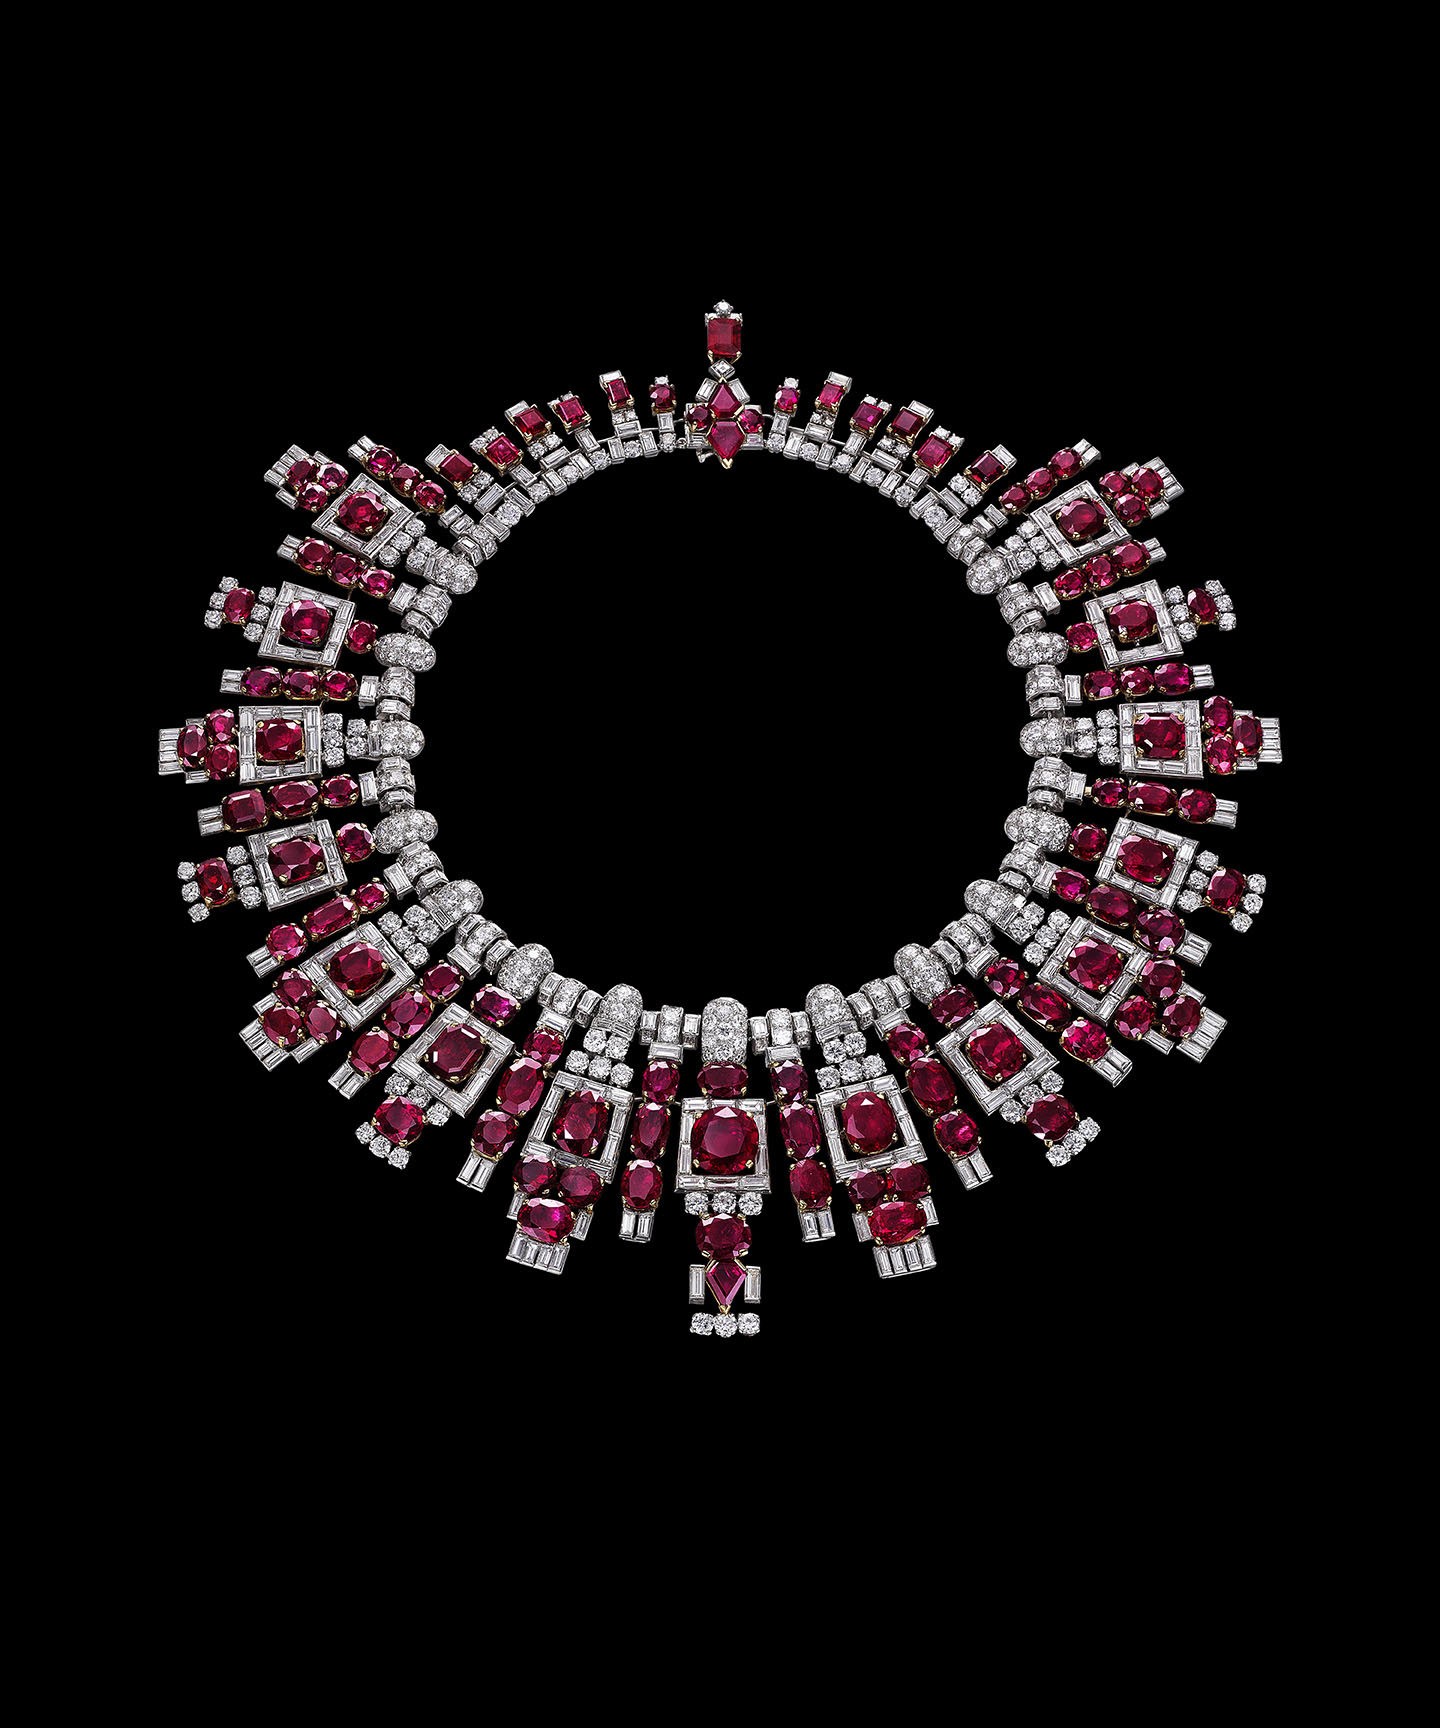 Nawanagar ruby necklace, Cartier, London, 1937.